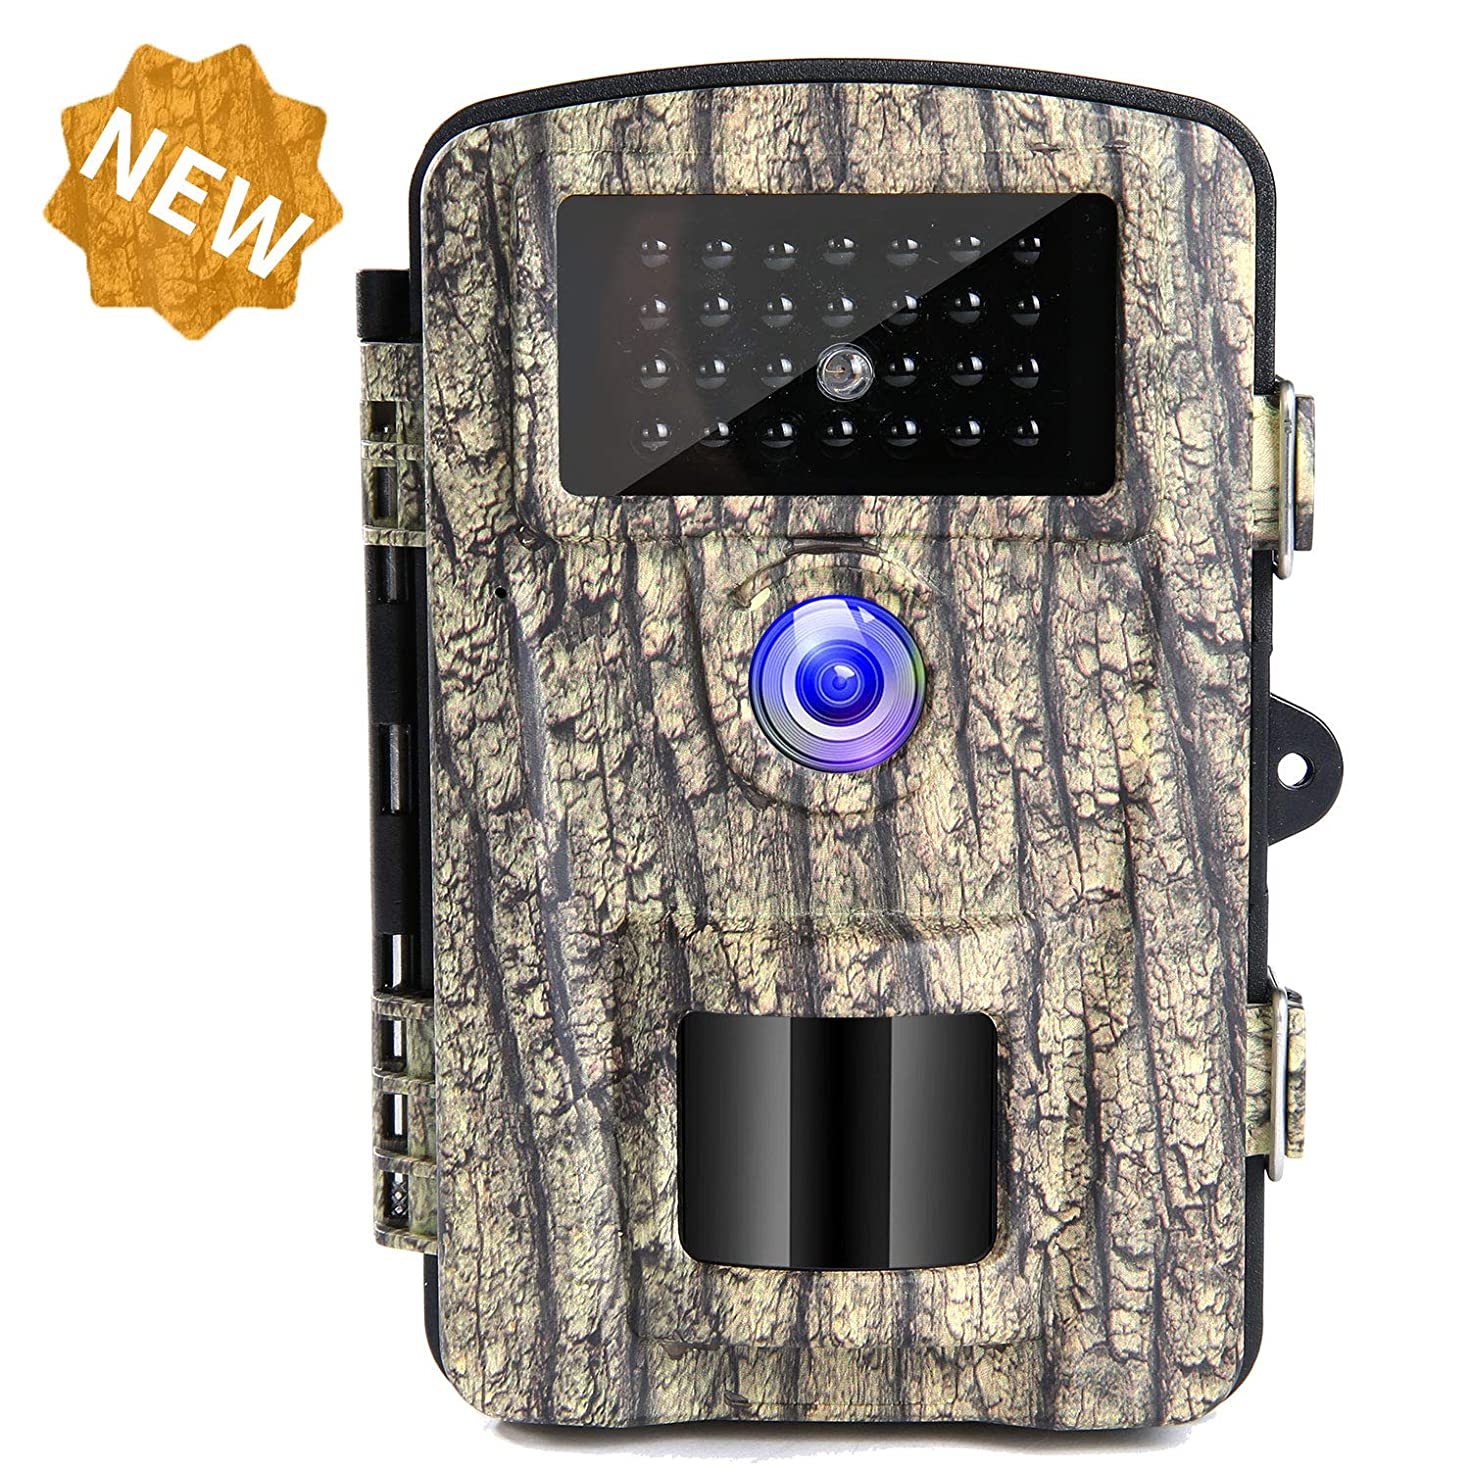 YIDA TECH Trail Camera 12MP 1080P Game Hunting Cameras with No Glow Night Vision Up to 65ft Scouting Cam for Wildlife Monitoring 27Pcs IR LEDs and IP66 Waterproof